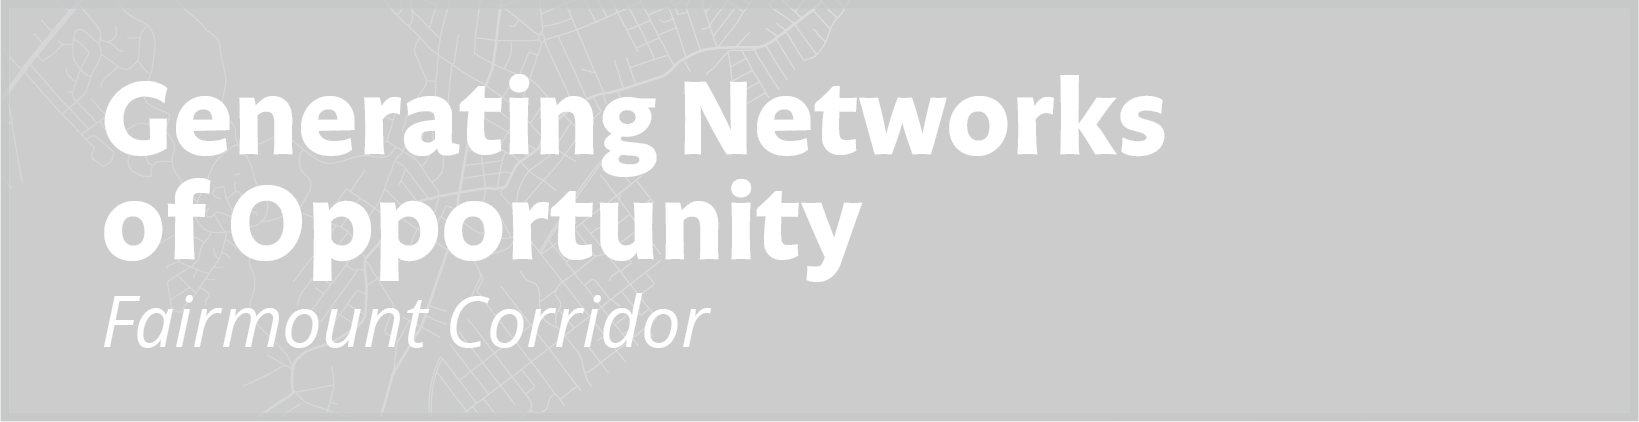 Generating Networks of Opportunity: Fairmount Corridor